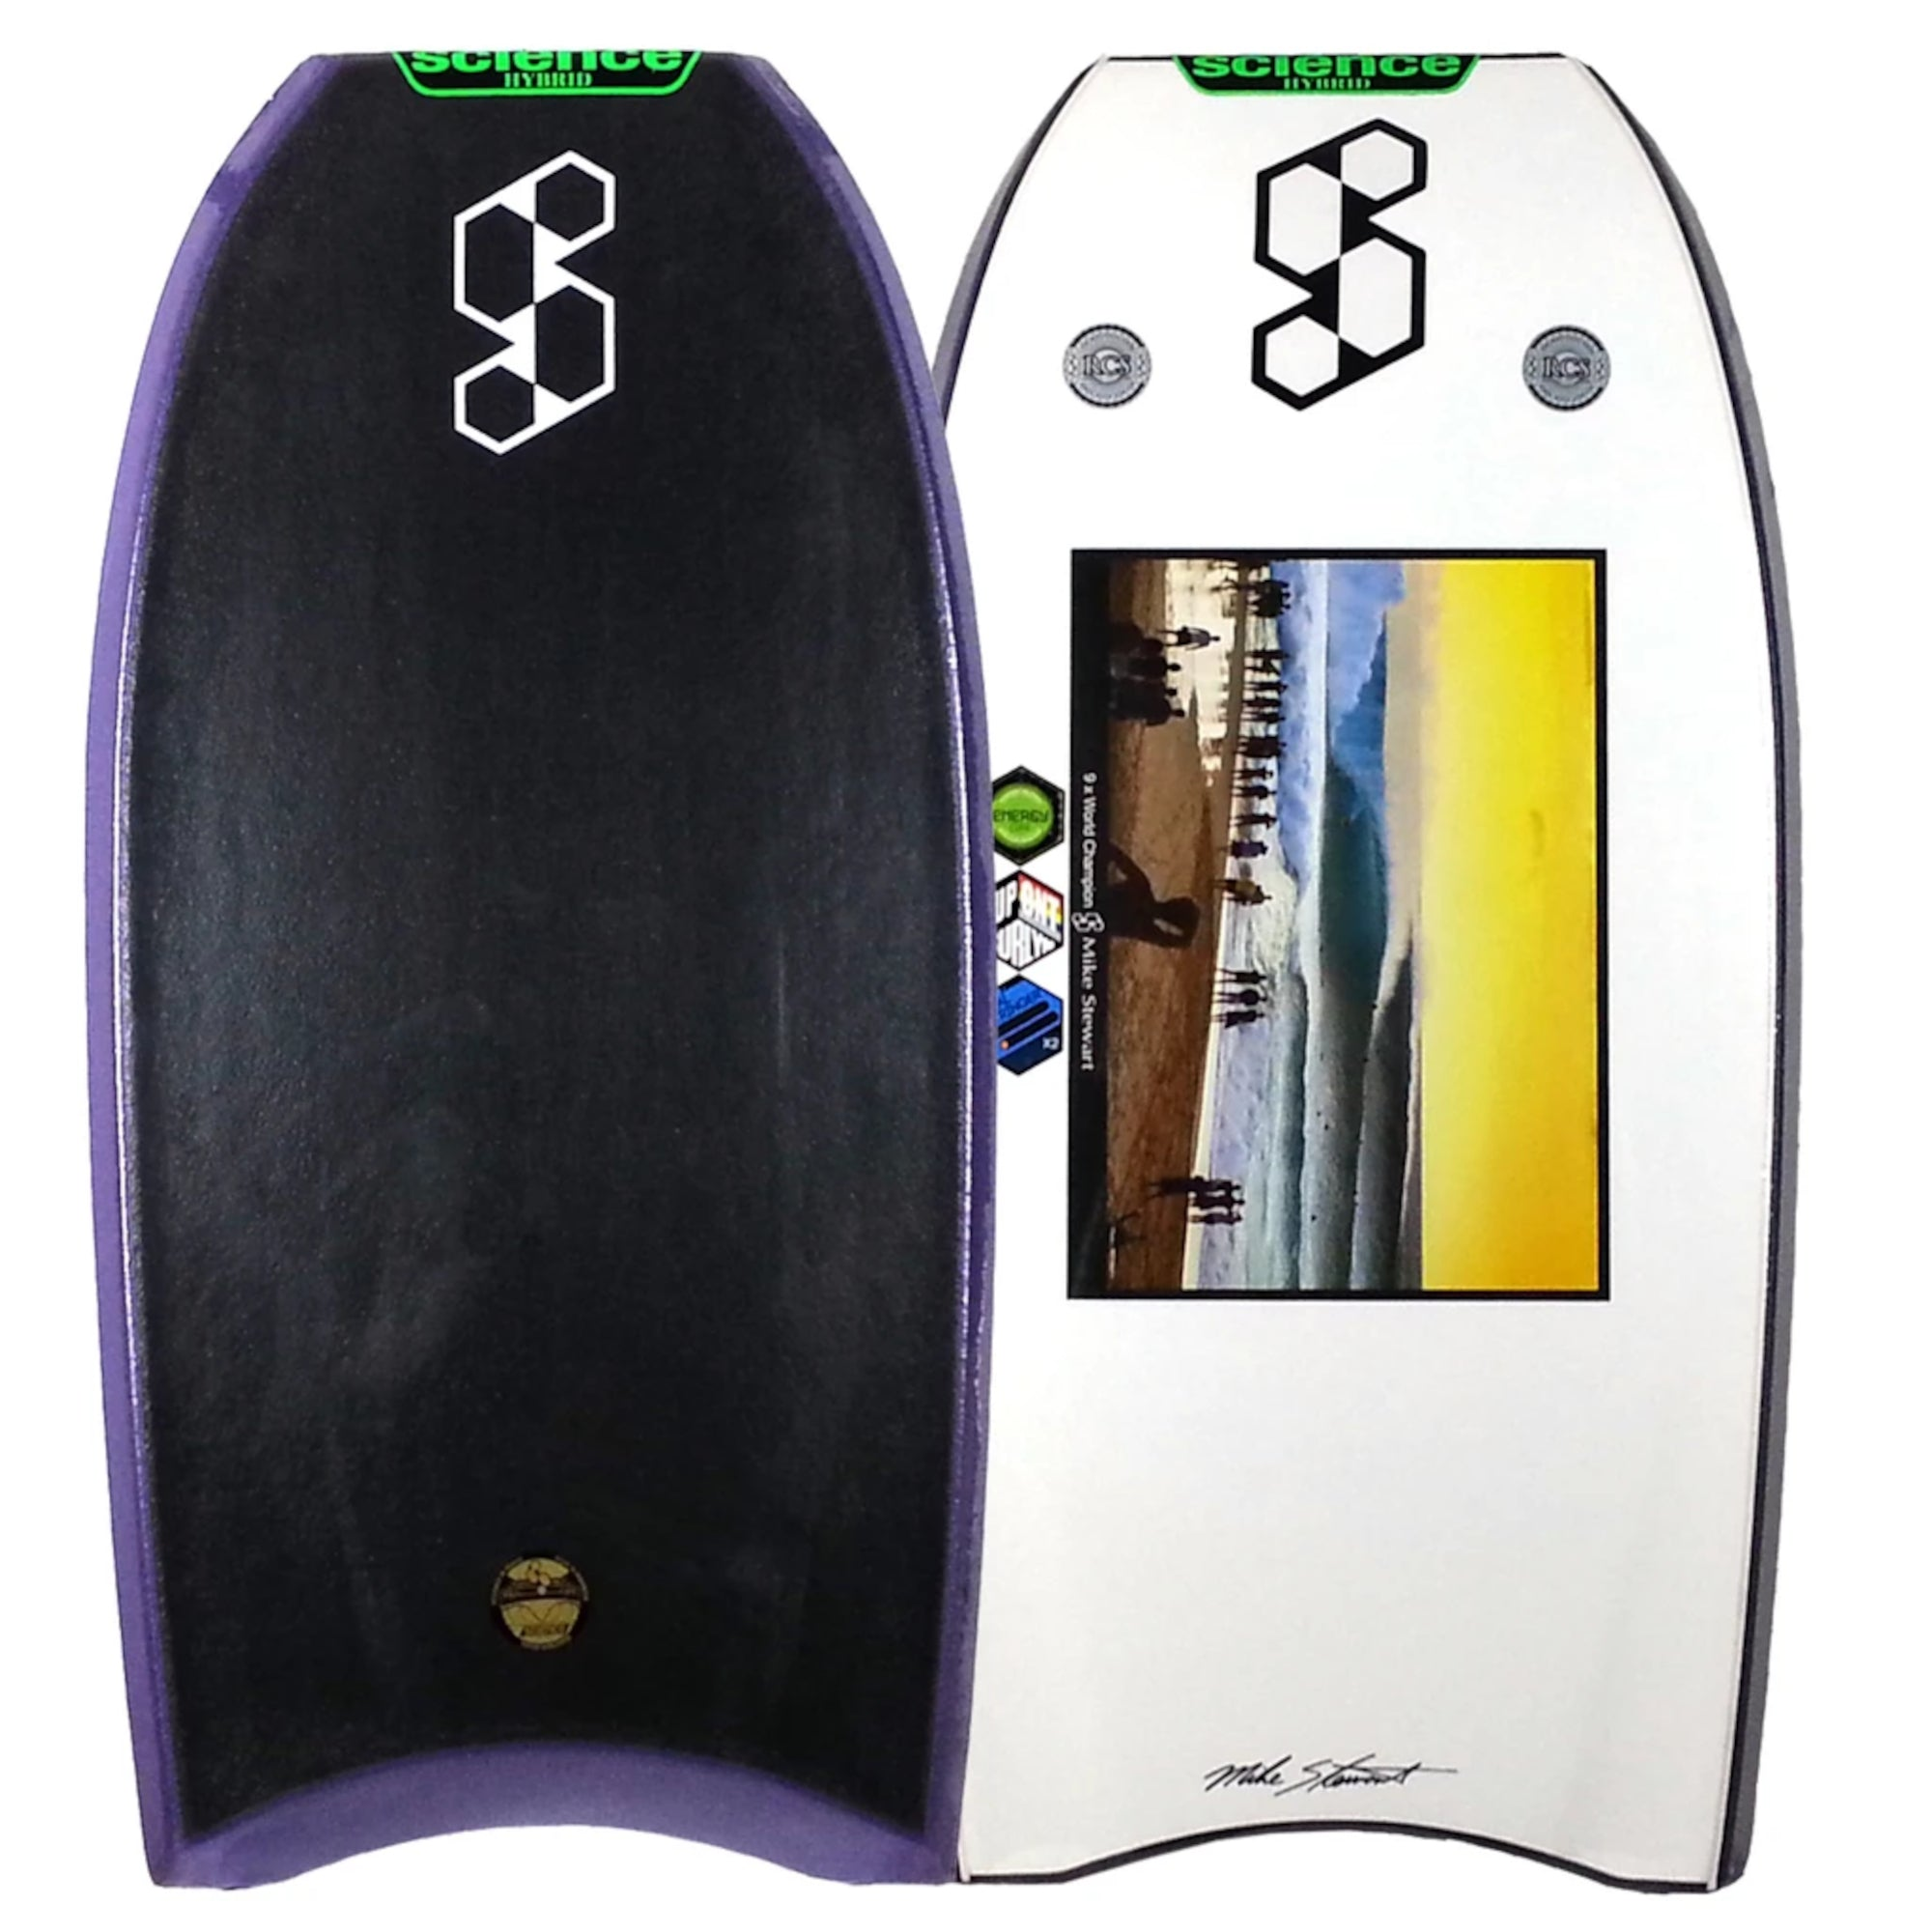 "Mike Stewart Hybrid 2X 41"" Bodyboard - Black/Purple/White"